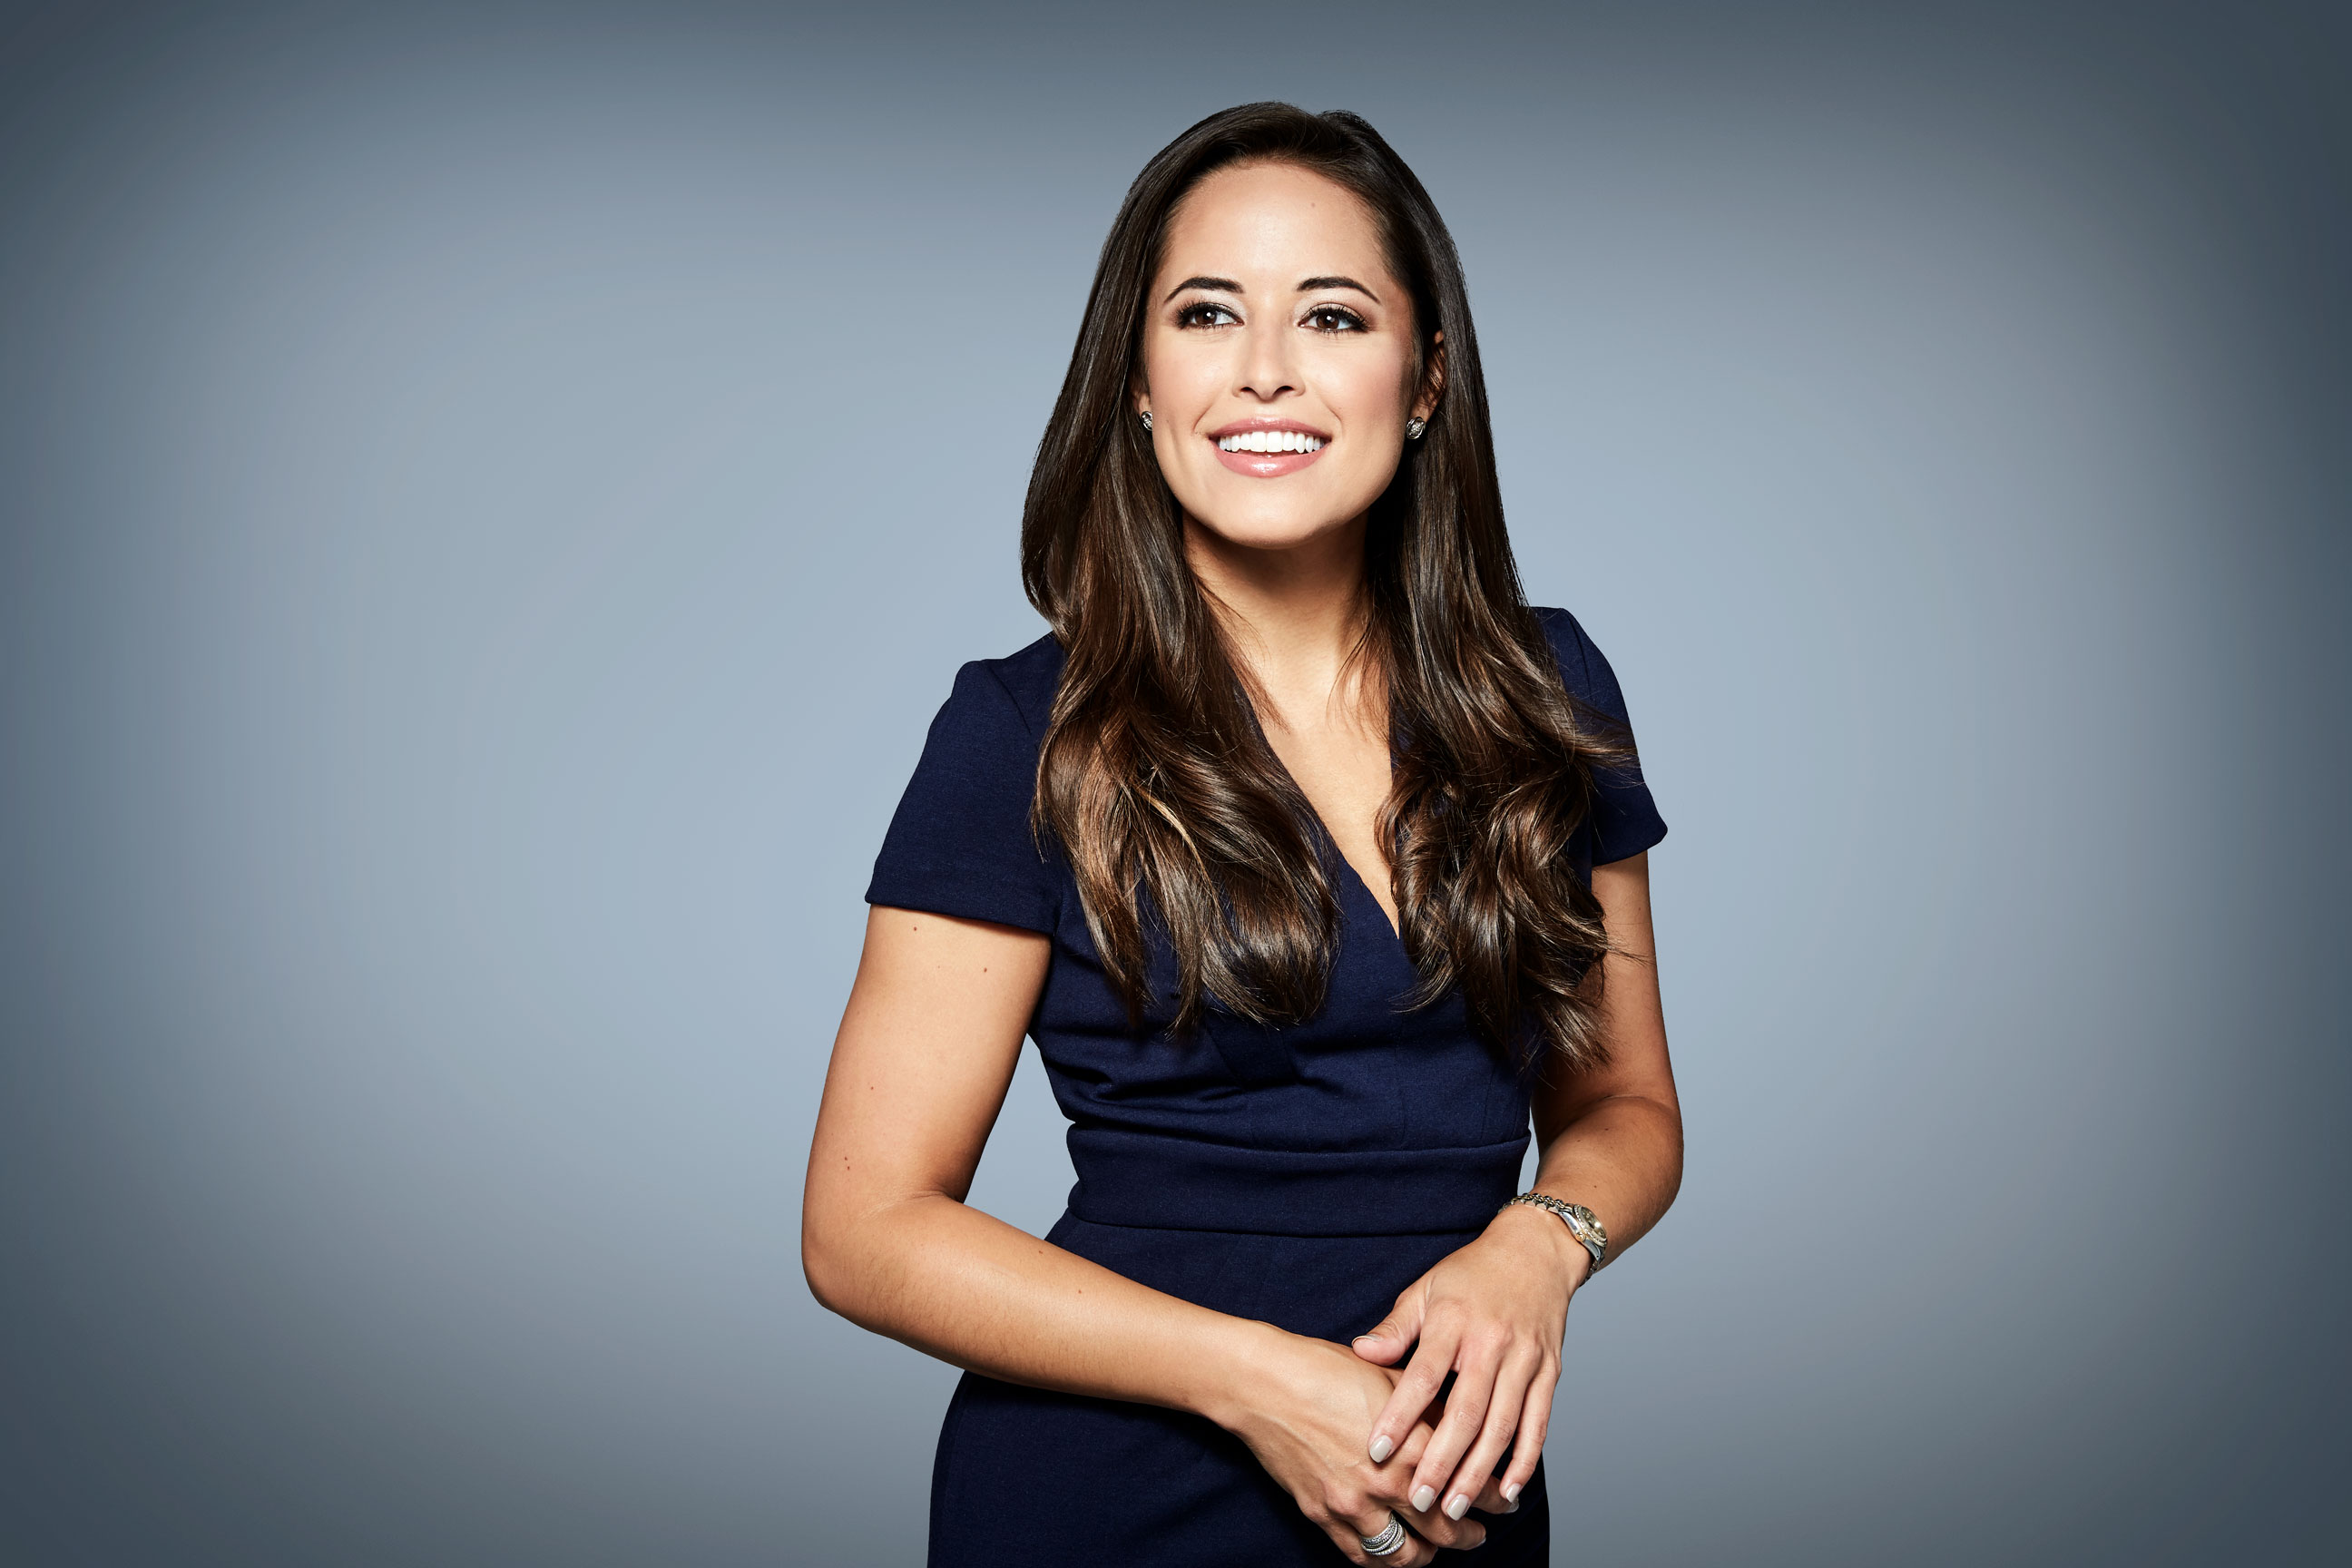 Catching up with Louisiana stars: Kaylee Hartung | LA Next ...